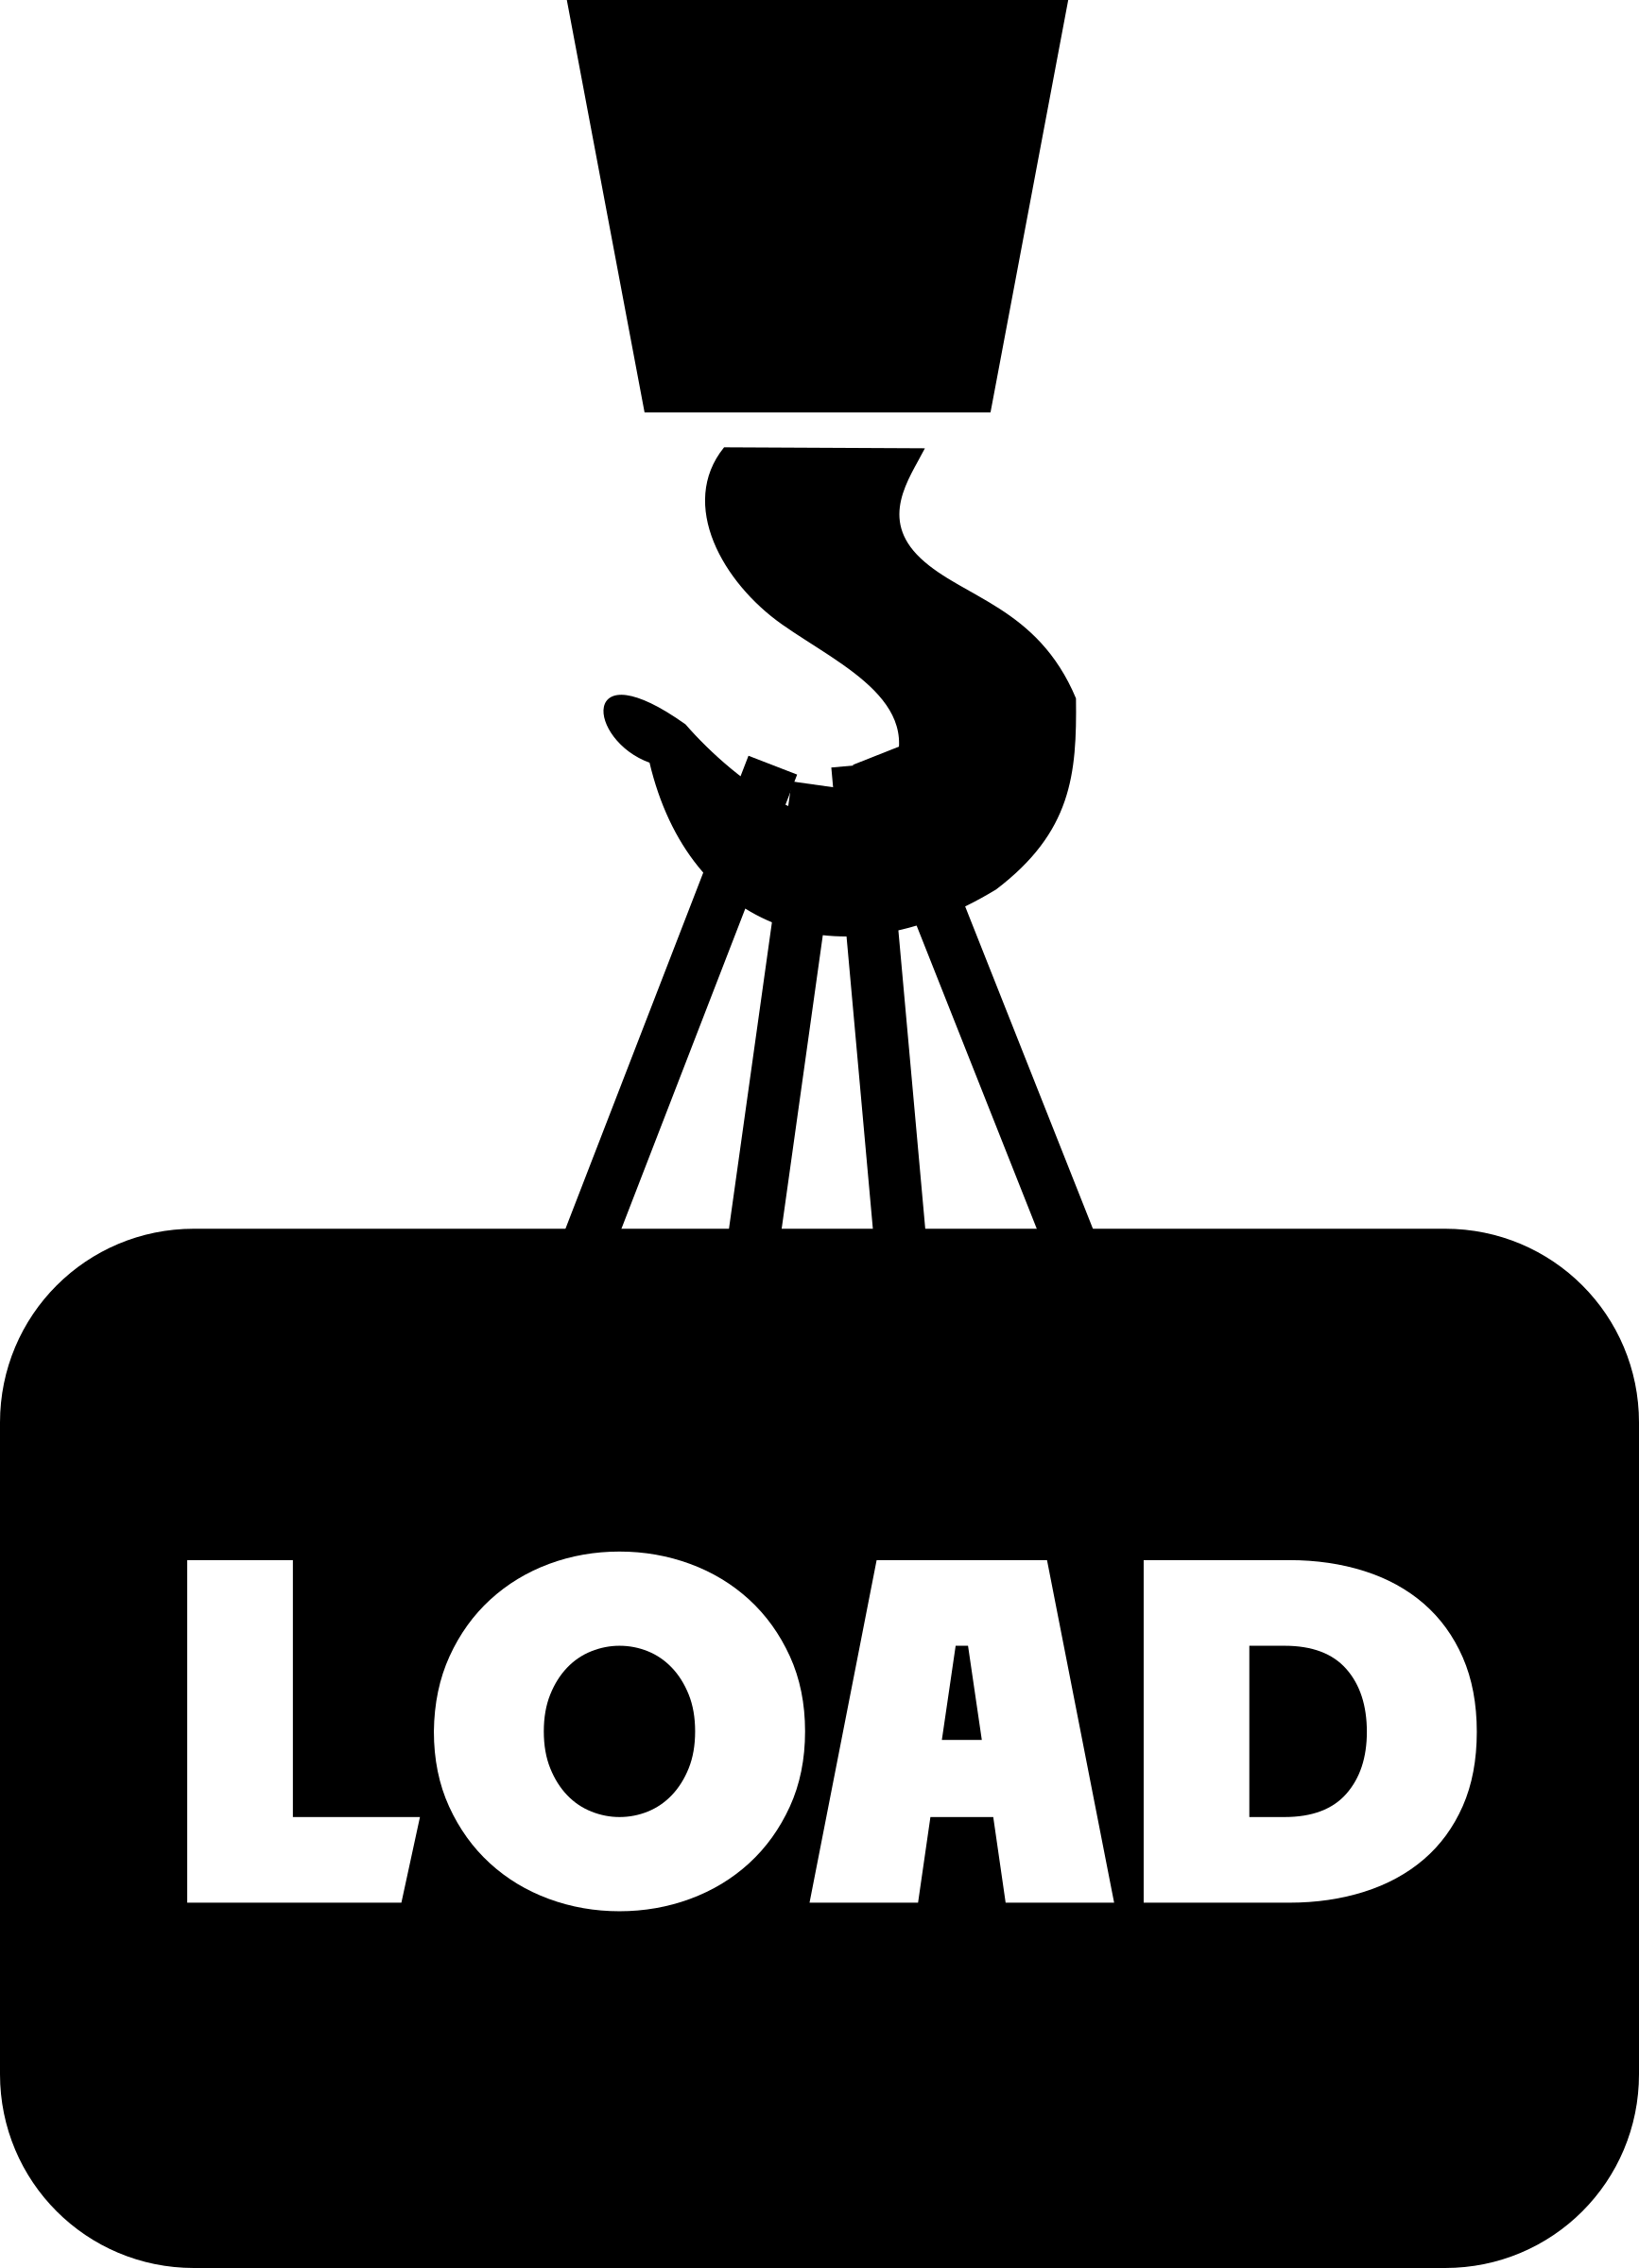 Load smpl bw by Shinnoske